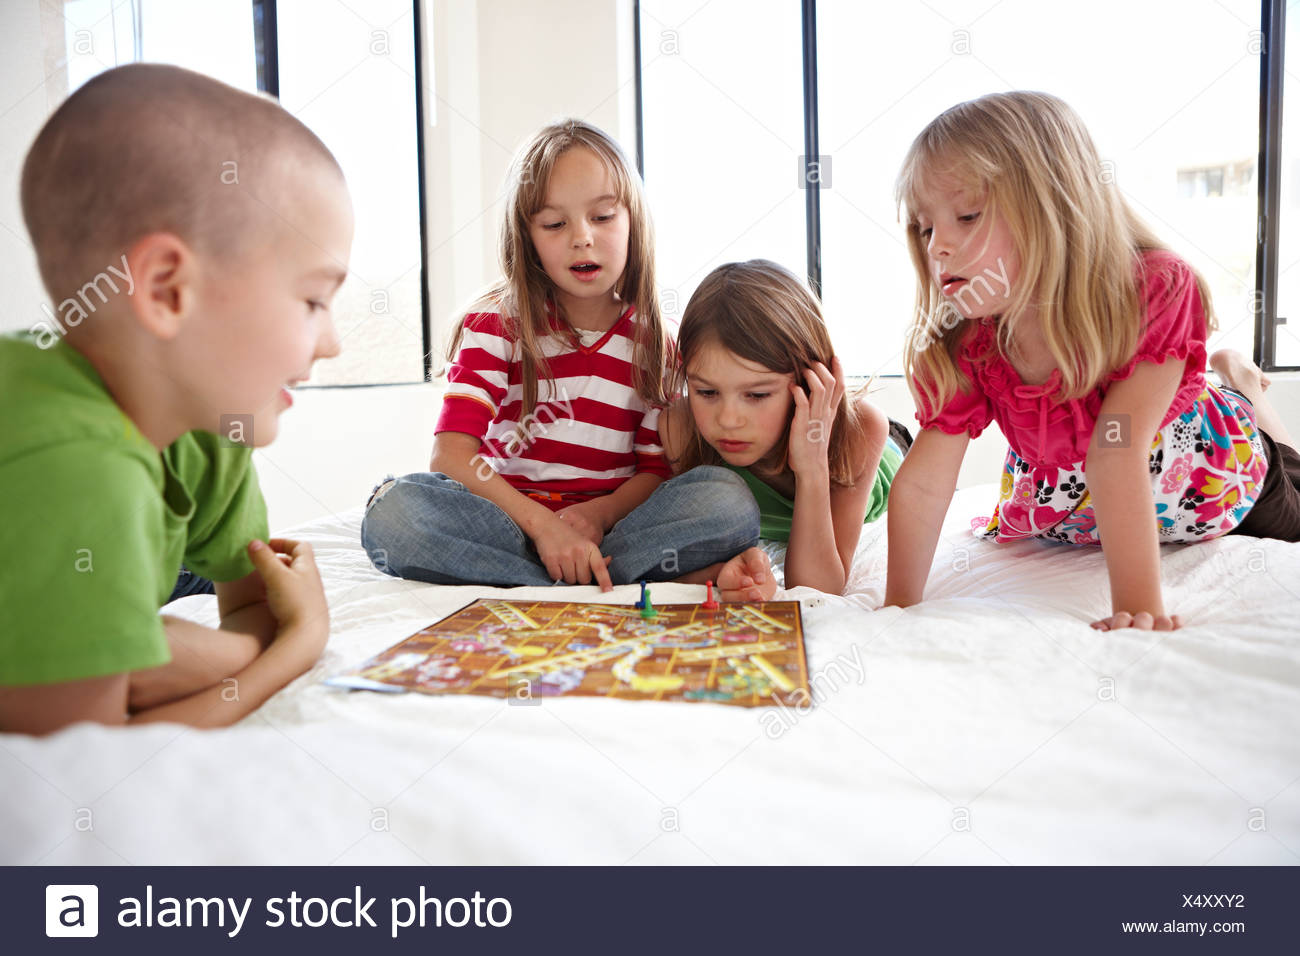 Children playing snakes and ladder on bed stock photo: 278416406.